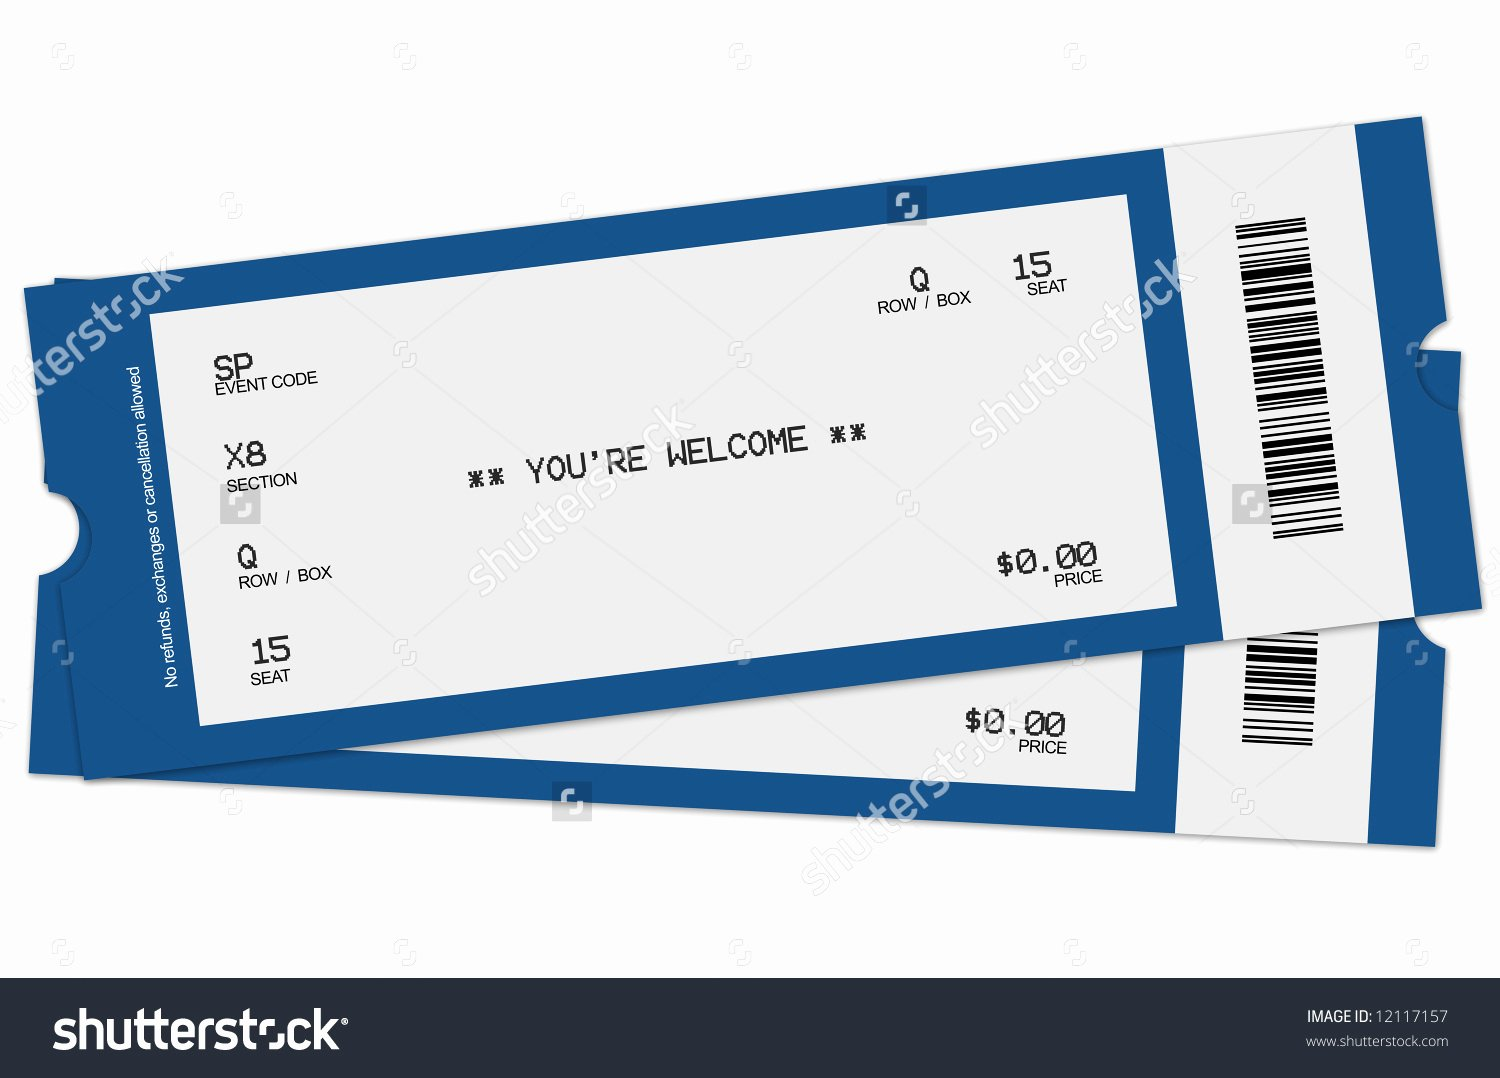 Free Concert Ticket Template New Free Concert Ticket Template Business Proposal Cover